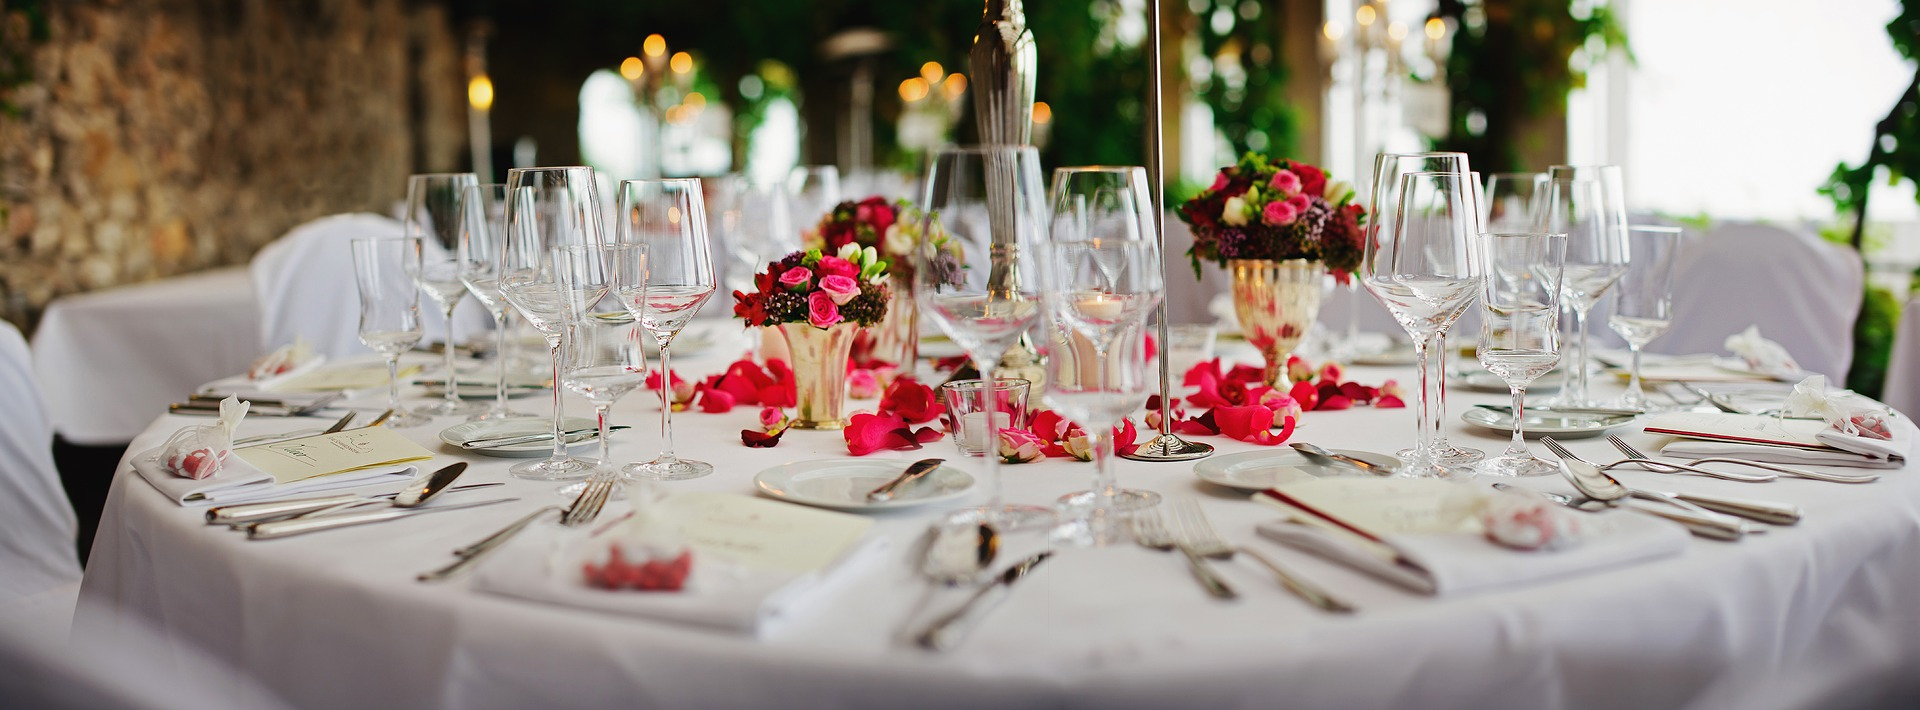 CATERING COMPANY IN JOHANNESBURG